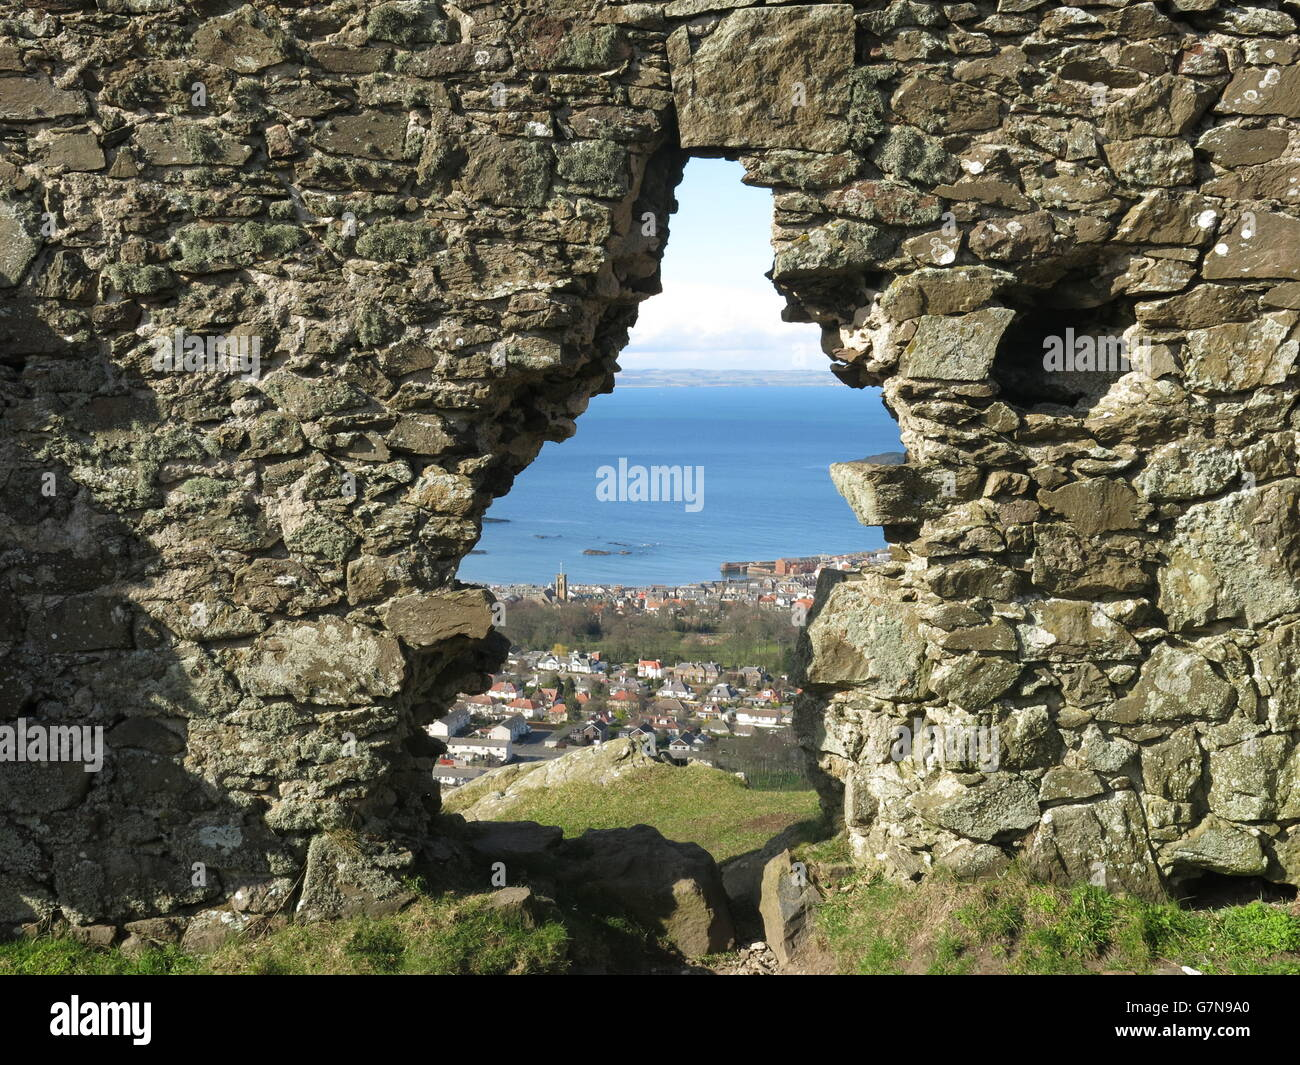 a gap in an old abandoned house looking out onto the sea in Edinburgh - Stock Image